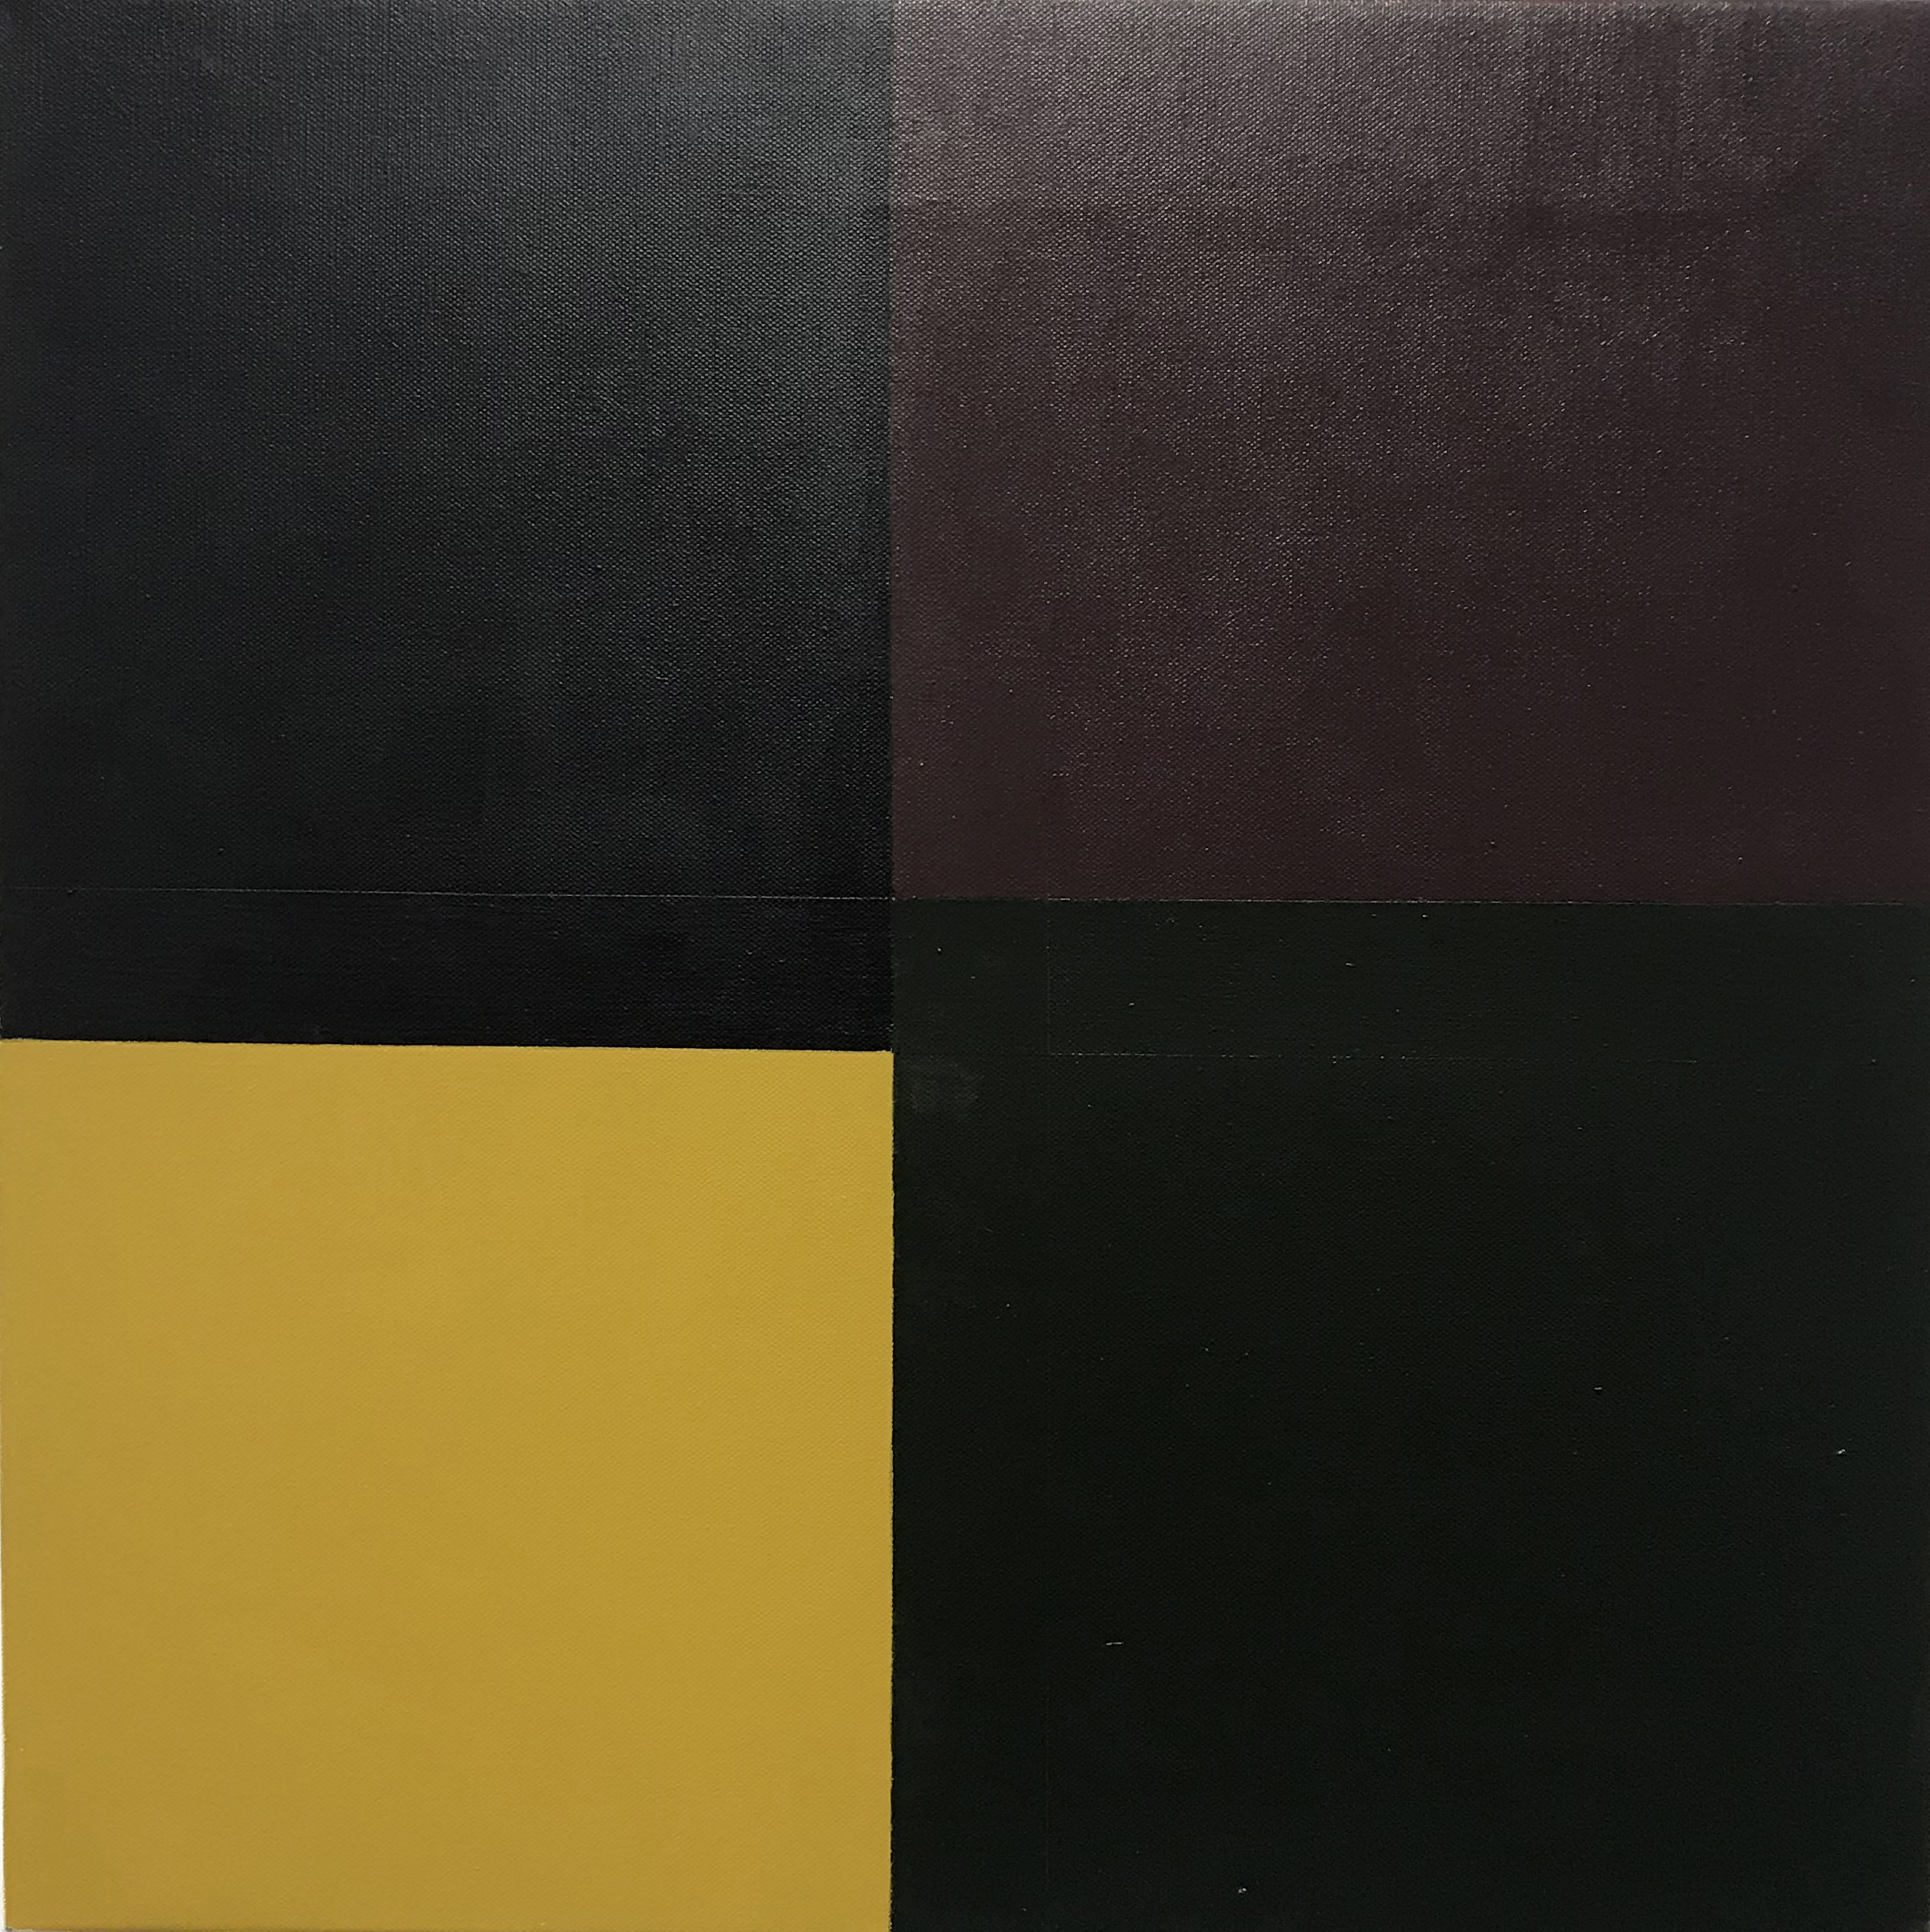 untitled  (LK18.004), 2018 acrylic on canvas 19 3/4 x 19 3/4 inches